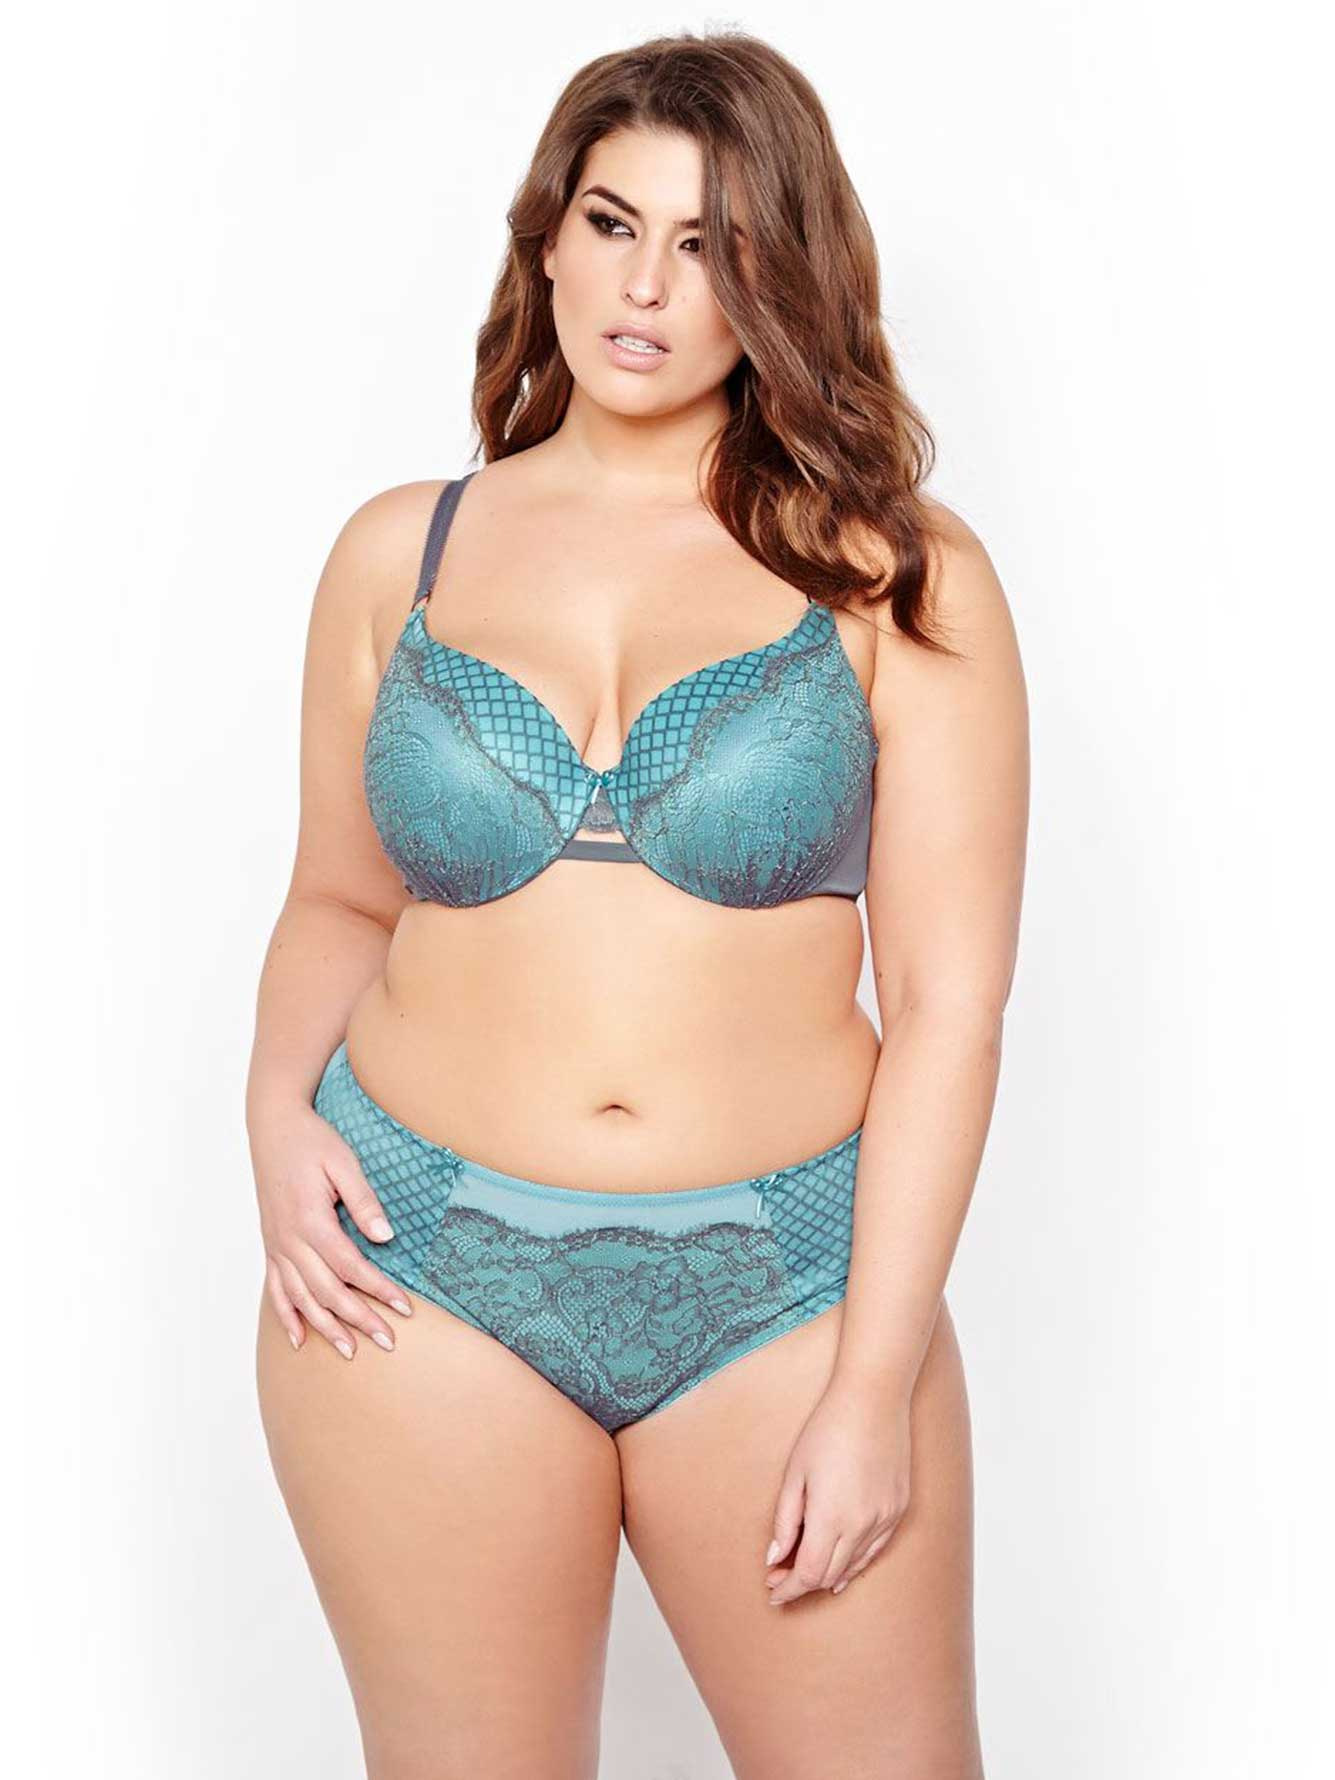 Ashley Graham Icon Bra with Lace and Mesh 329763600